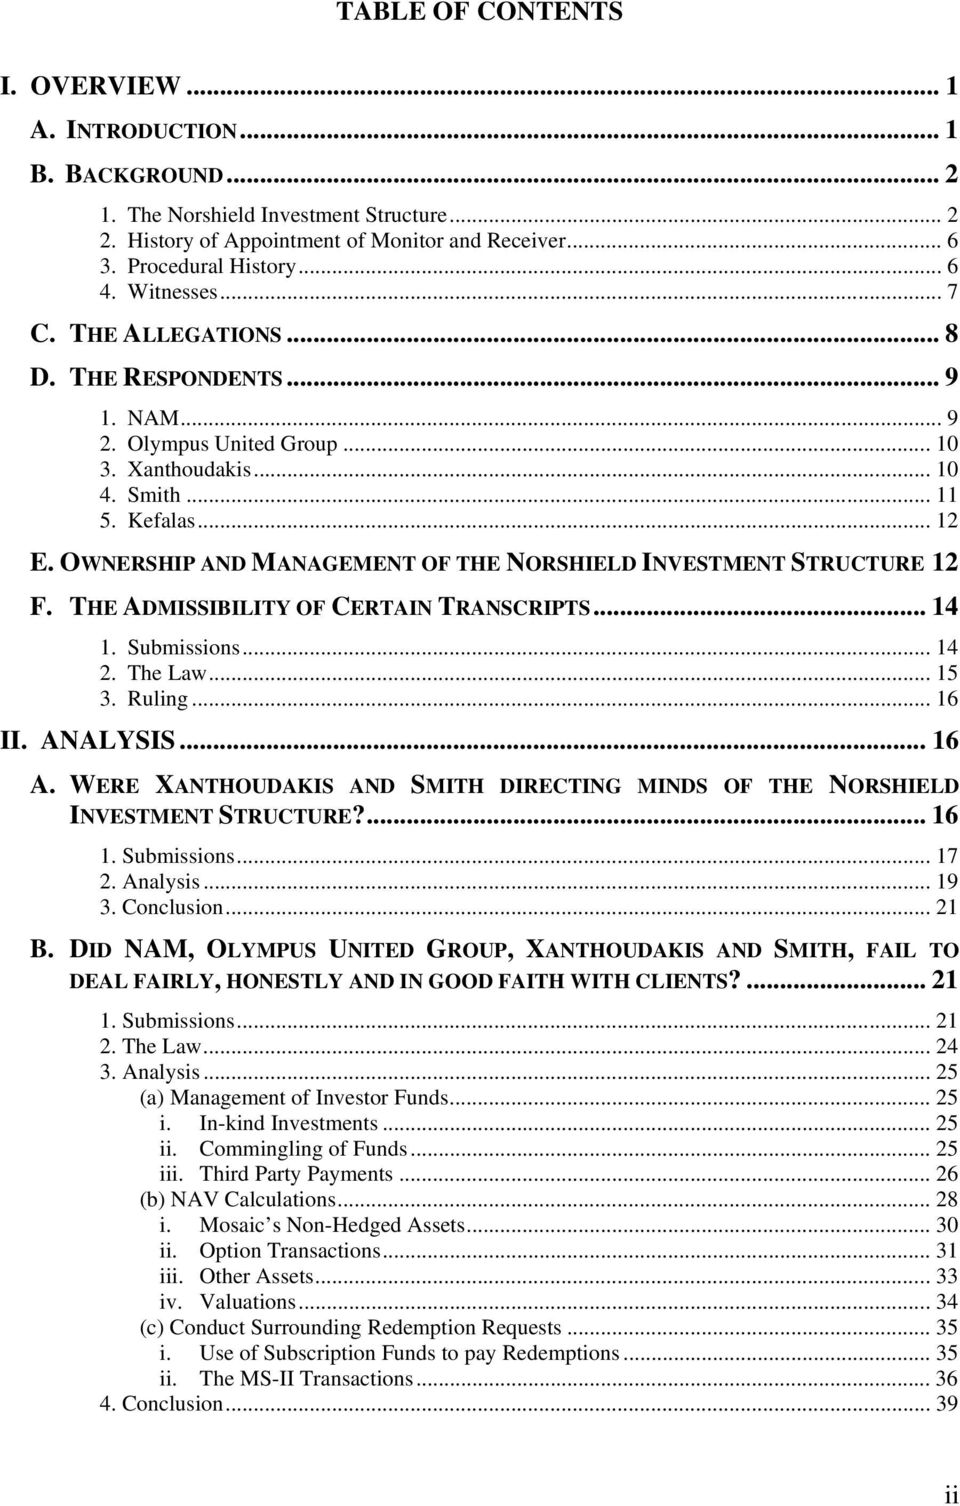 OWNERSHIP AND MANAGEMENT OF THE NORSHIELD INVESTMENT STRUCTURE 12 F. THE ADMISSIBILITY OF CERTAIN TRANSCRIPTS... 14 1. Submissions... 14 2. The Law... 15 3. Ruling... 16 II. ANALYSIS... 16 A.